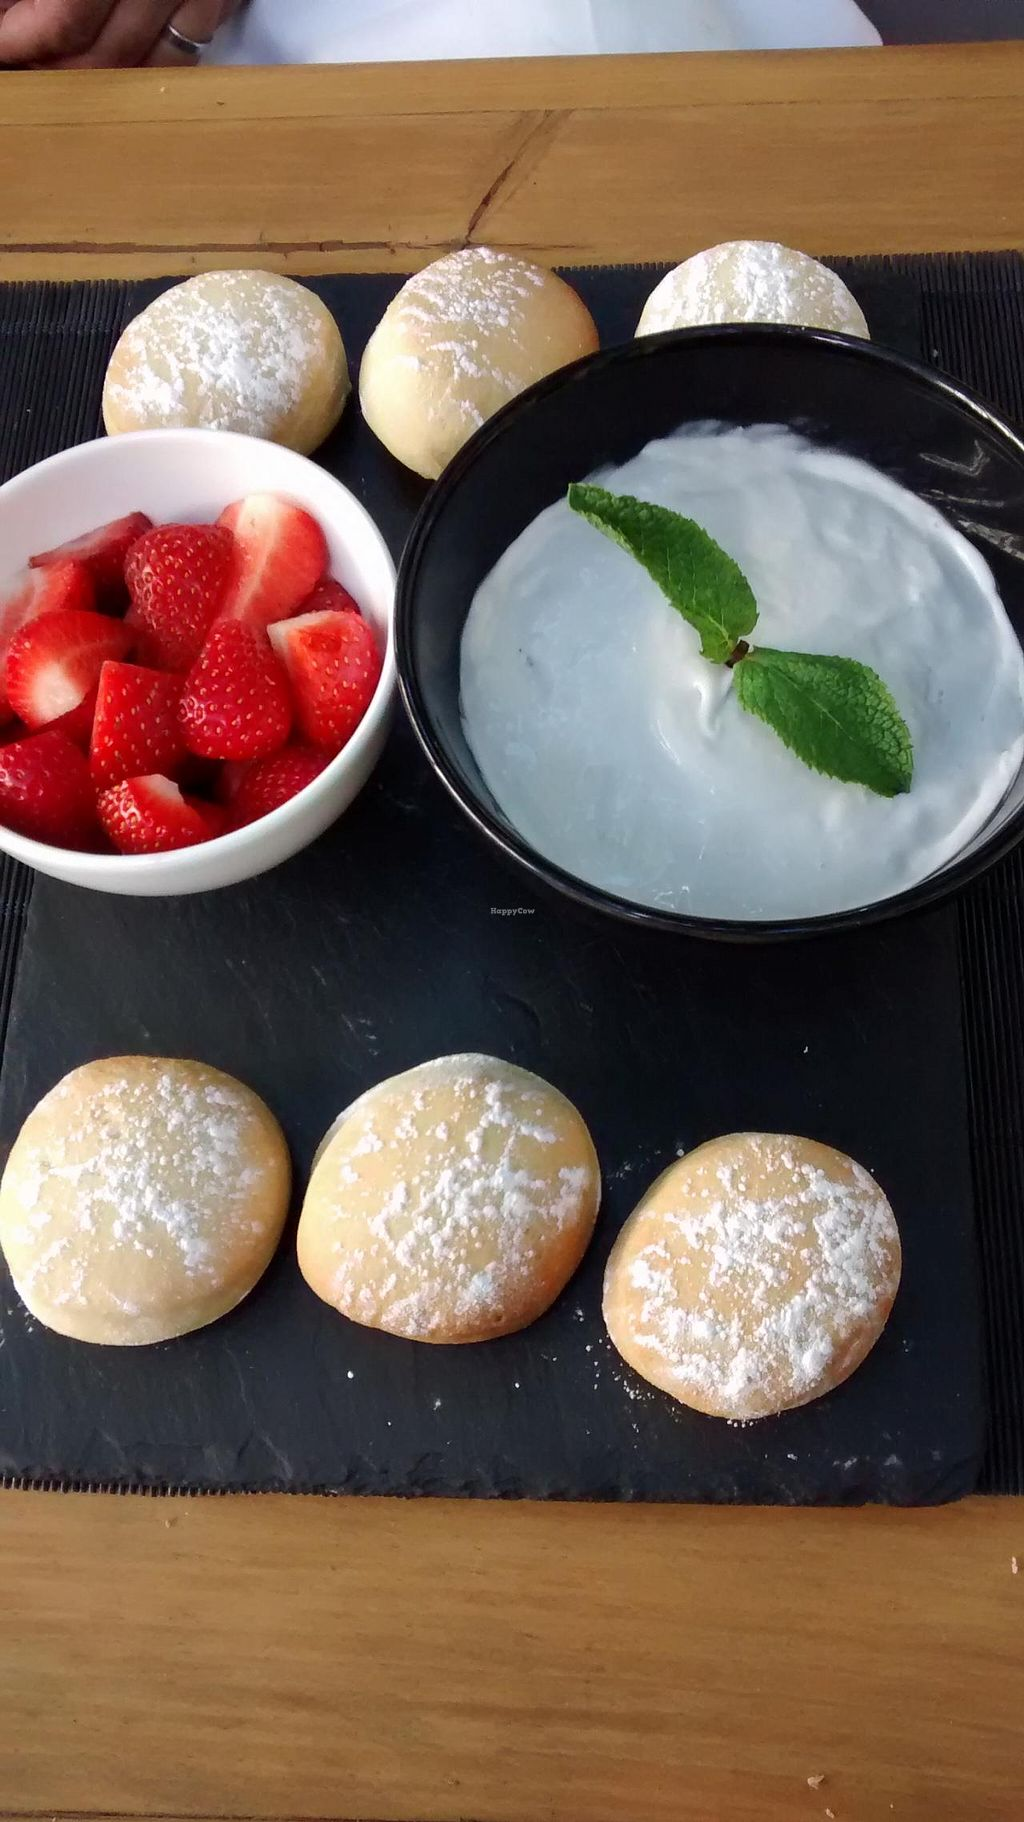 "Photo of CLOSED: Raw - La Suite West  by <a href=""/members/profile/GiraffeGirl"">GiraffeGirl</a> <br/>scones, strawberries and coconut cream <br/> September 1, 2014  - <a href='/contact/abuse/image/42783/78787'>Report</a>"